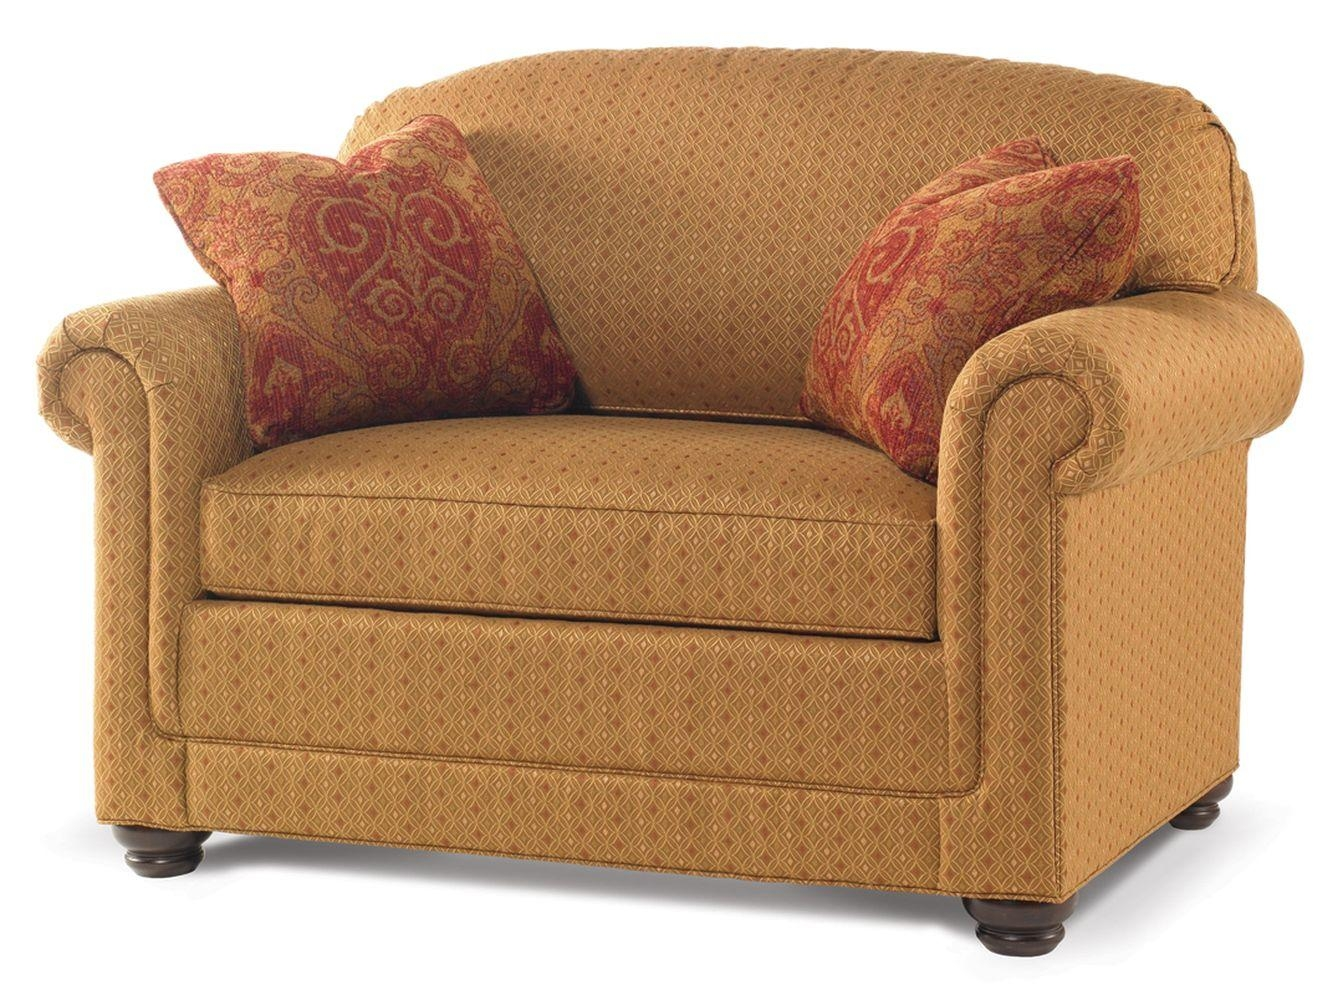 Small Twin Sleeper Sofas Chairs With Pillow And Storage Plus Brown Pertaining To Twin Sleeper Sofa Chairs (Image 12 of 20)